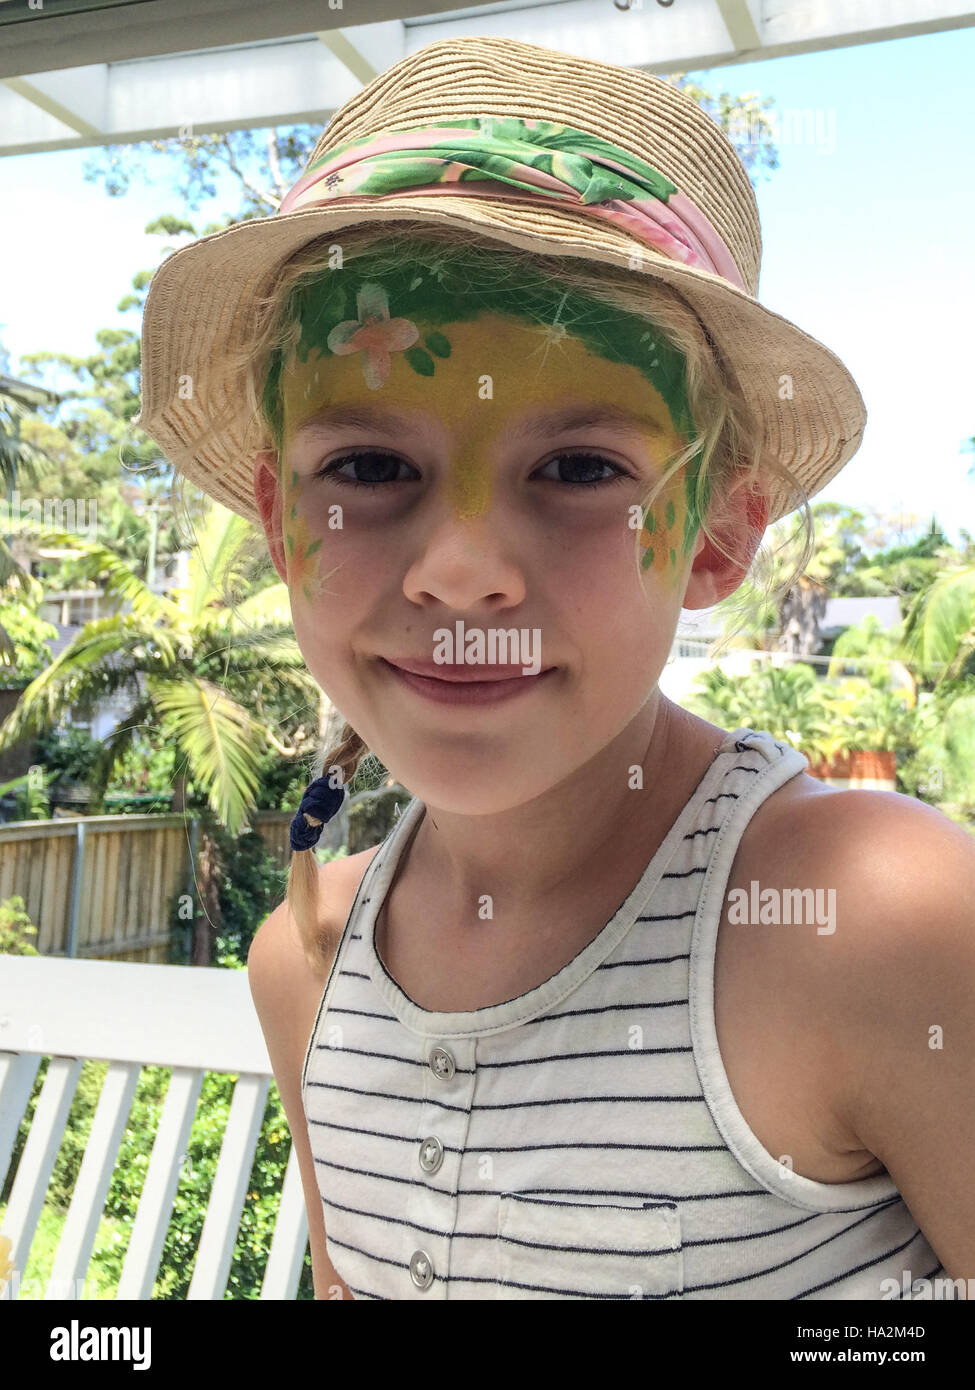 Portrait of a boy with face paint in a straw hat Stock Photo